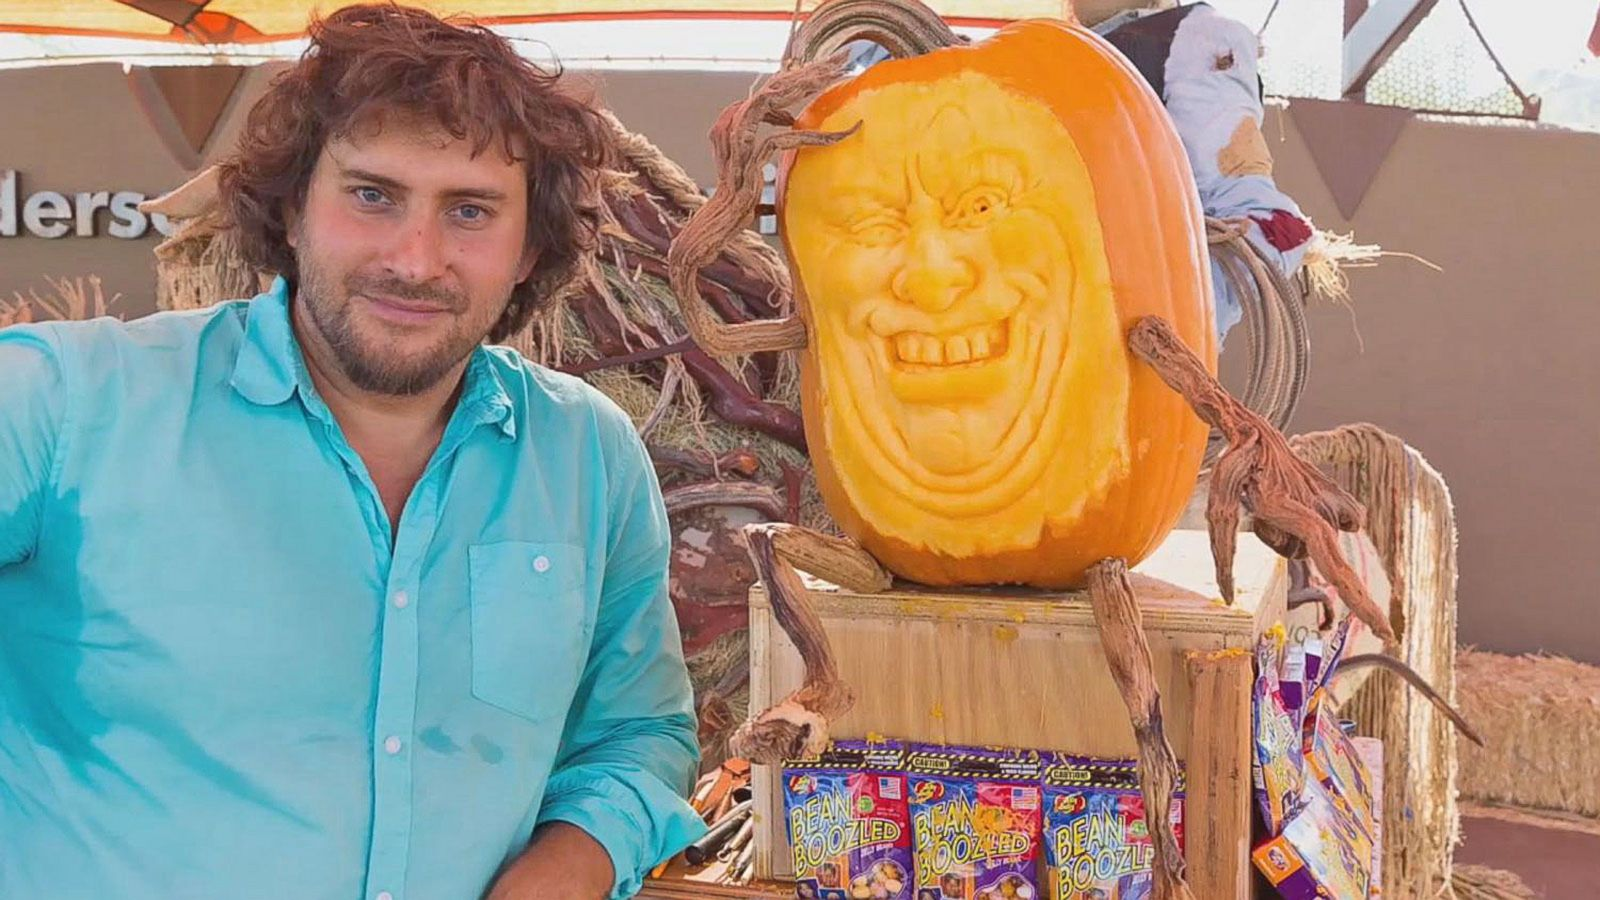 VIDEO: Pumpkin Carving Artists Create Halloween 'Enchanted Garden'